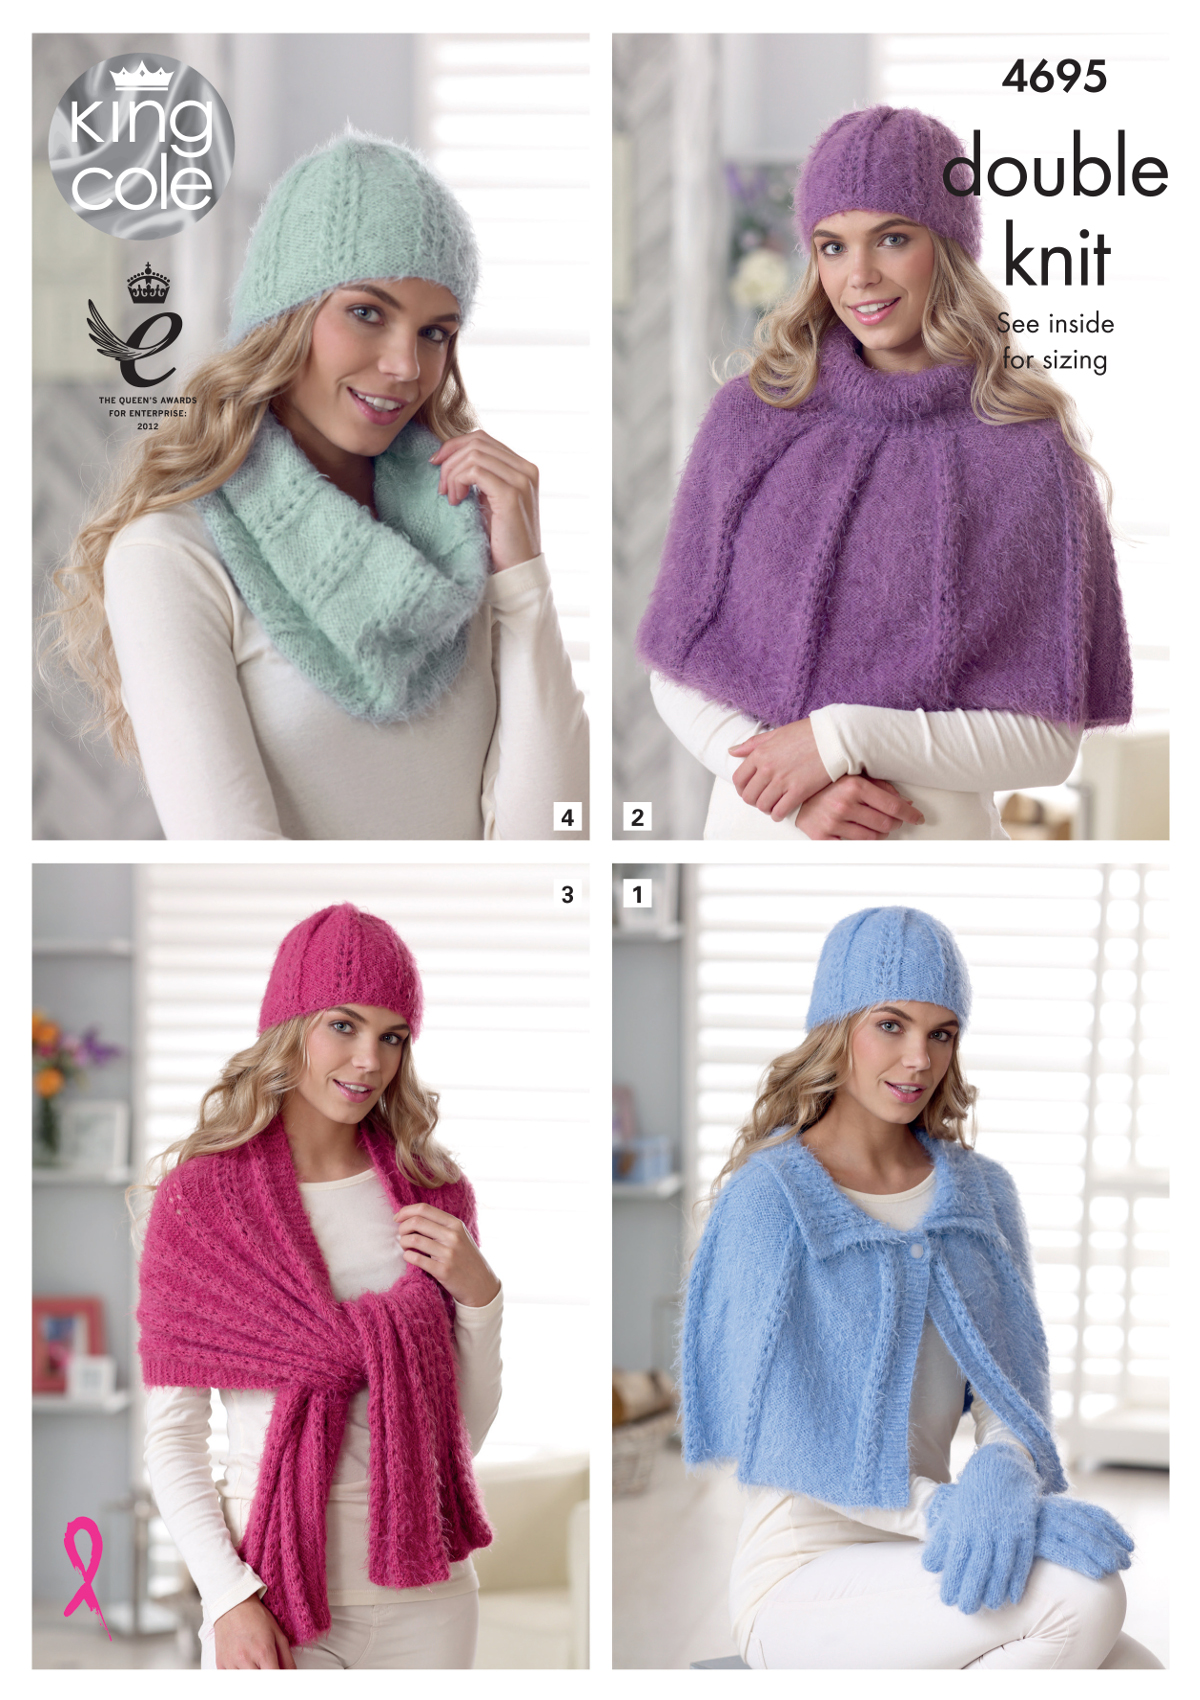 Details about Womens Capes Wrap & Accessories Knitting Pattern King Cole  Double Knit DK 4695